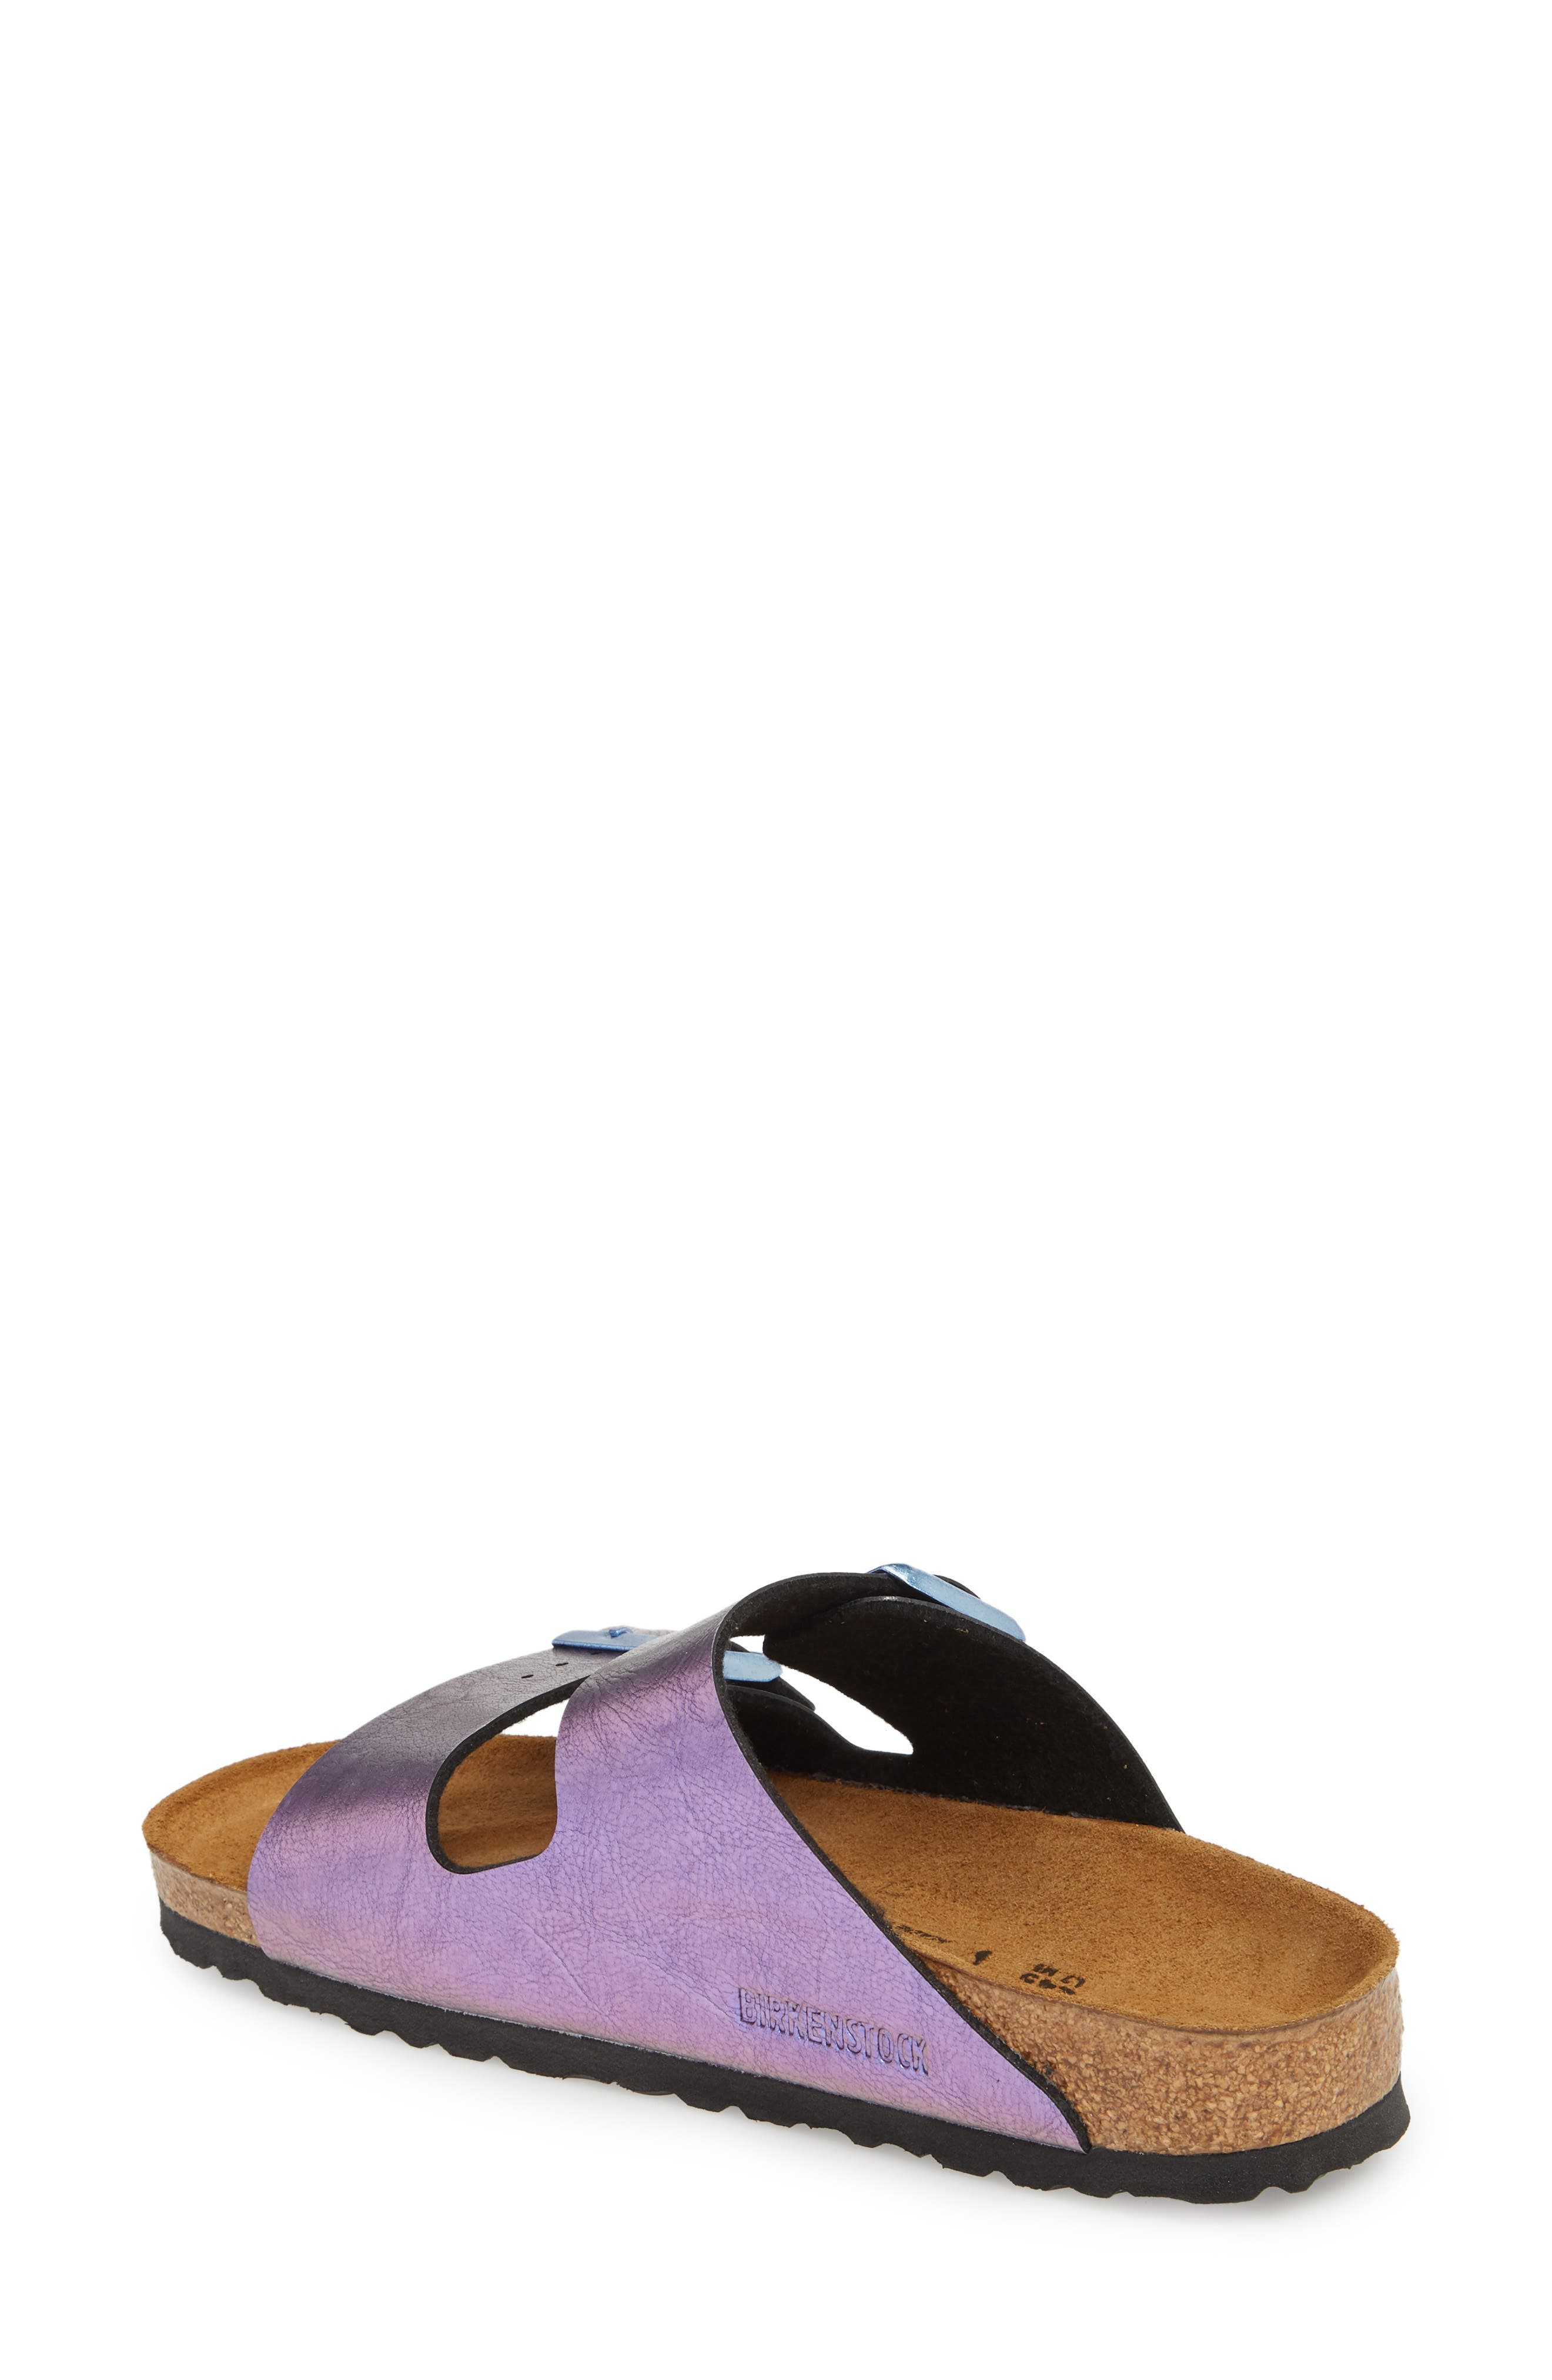 Arizona Graceful Birko-Flor<sup>™</sup> Sandal,                             Alternate thumbnail 2, color,                             VIOLET